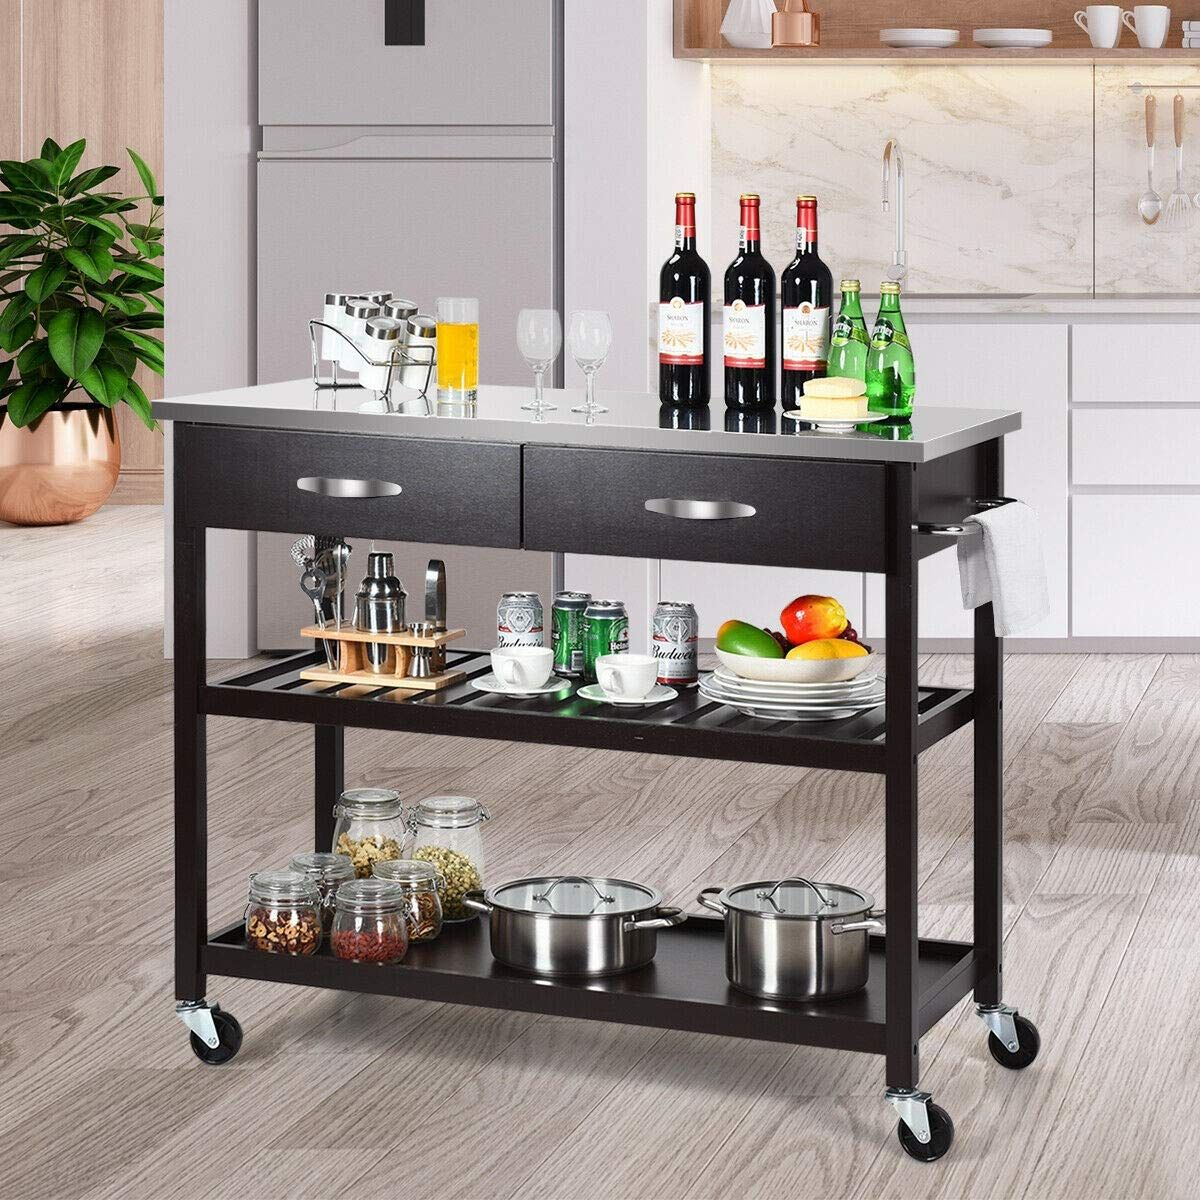 MultiUse Island Trolley Cart Stainless Steel Storage